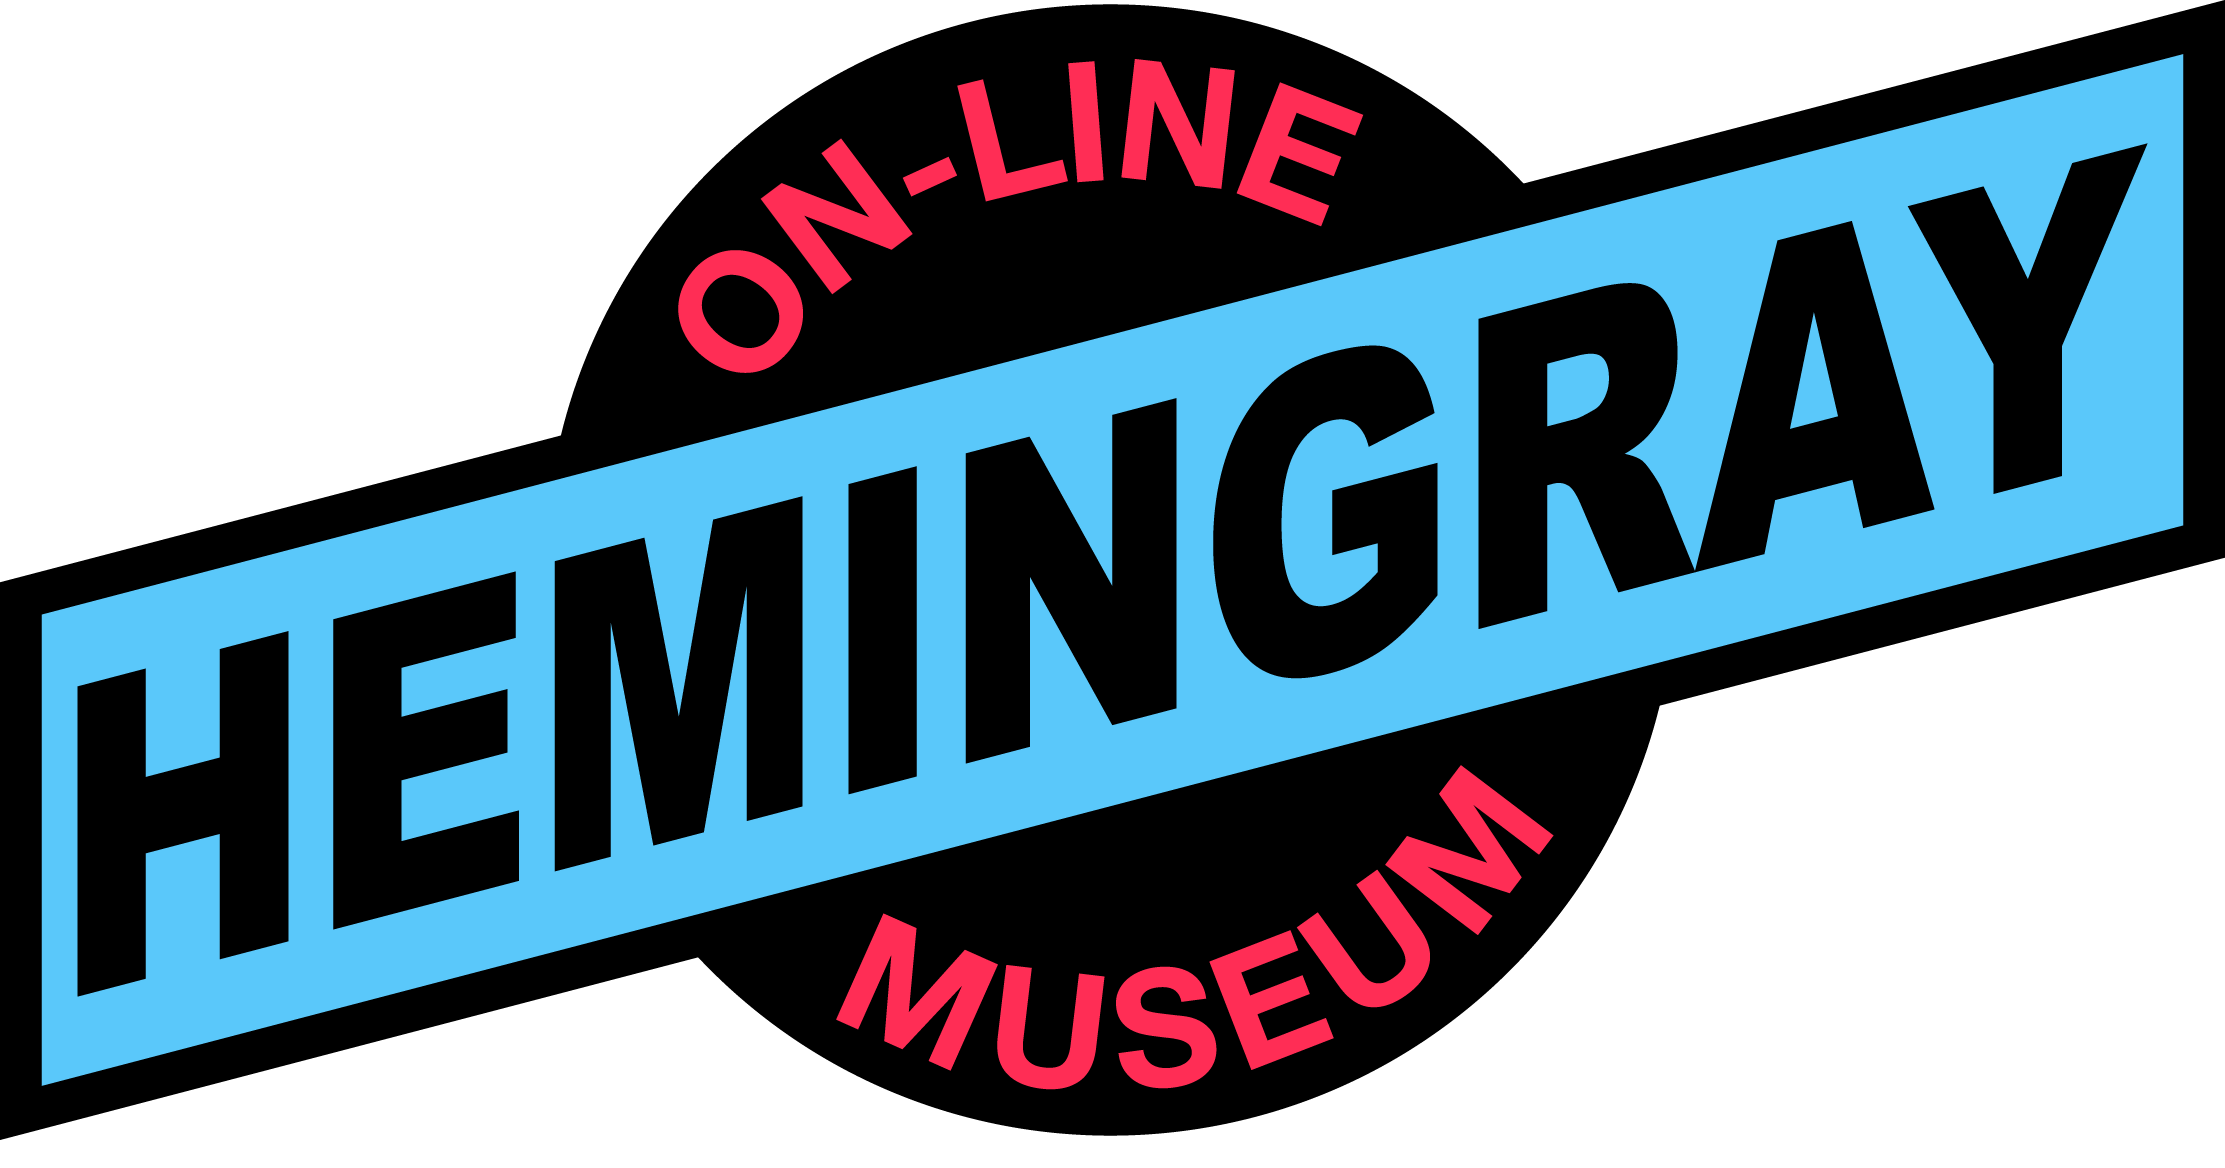 Hemingray On'Line Musueum logo